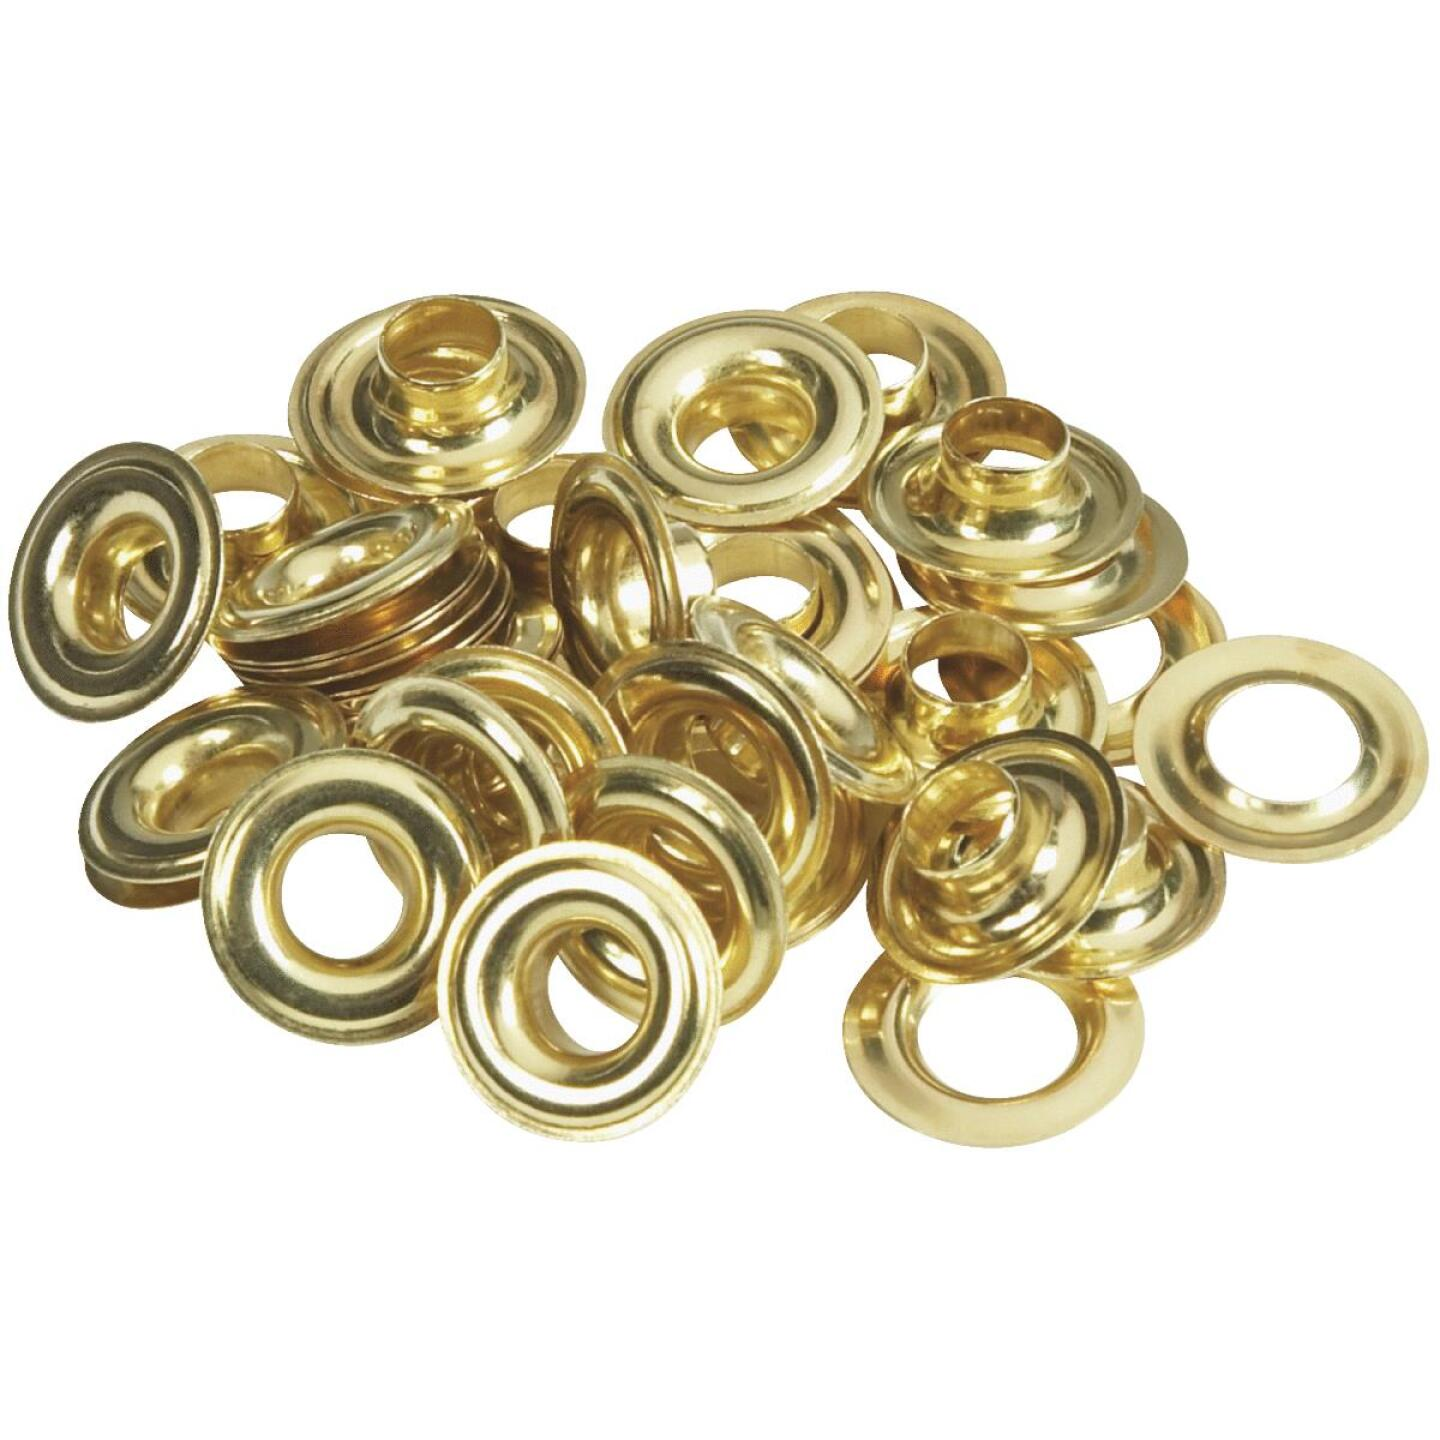 Lord & Hodge 5/16 In. Brass Grommet Refills (24 Ct.) Image 1